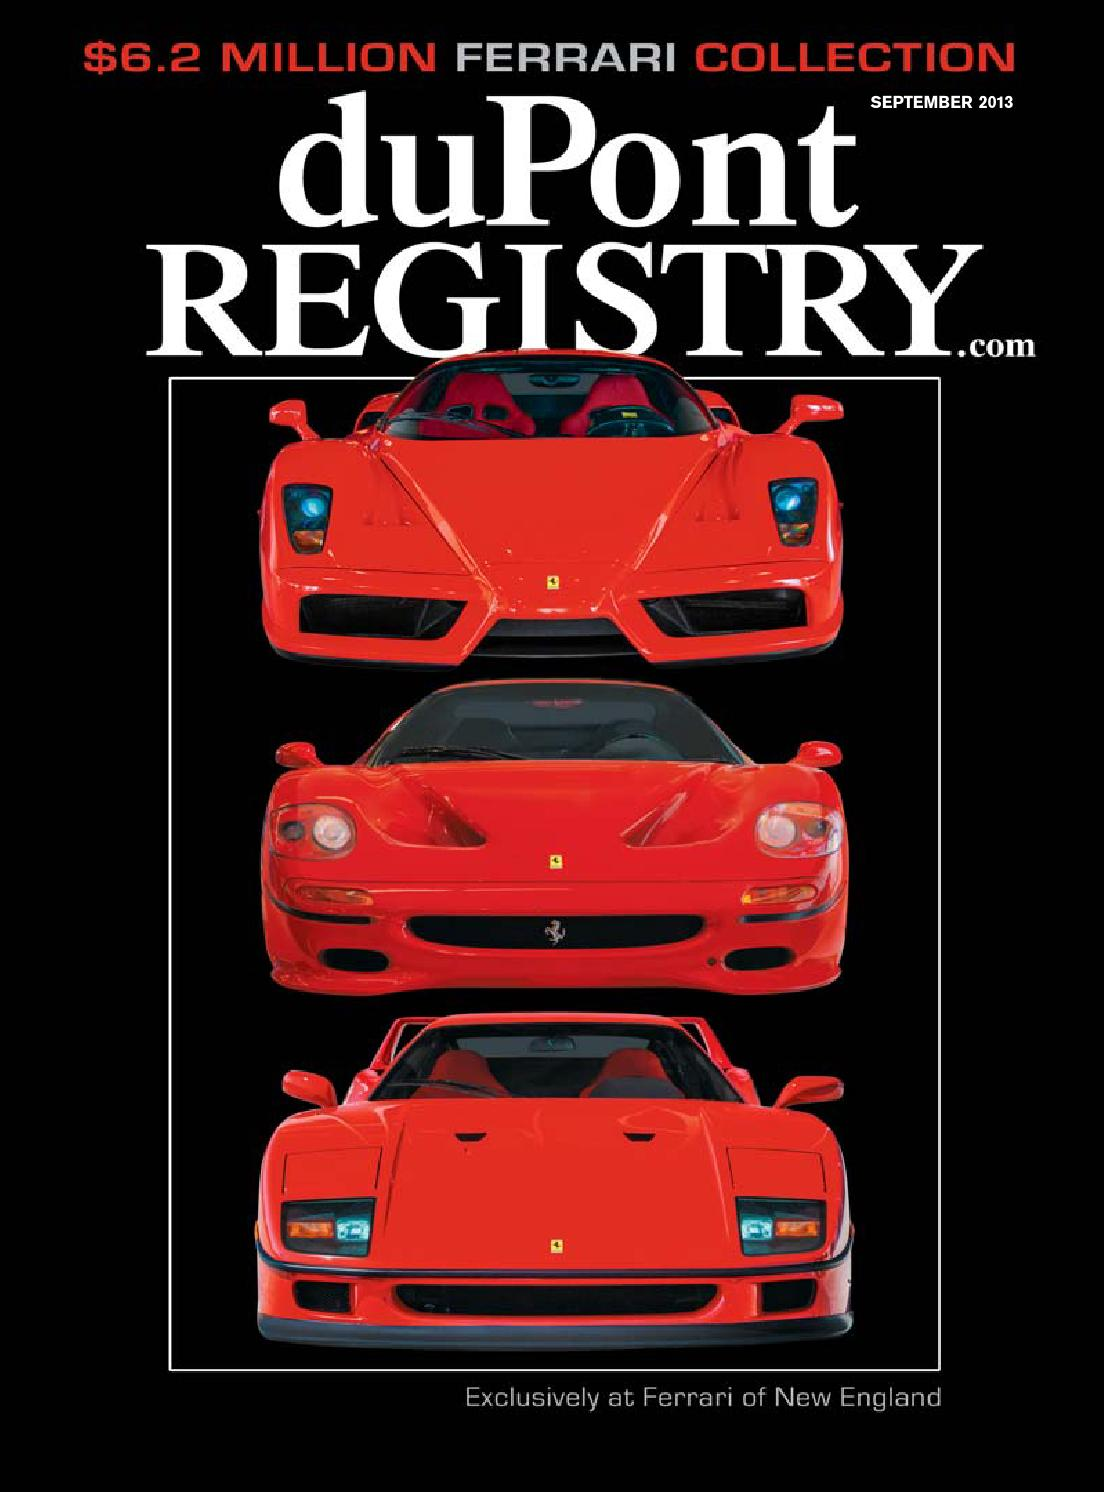 duPontREGISTRY Autos September 2013 by duPont REGISTRY - Issuu